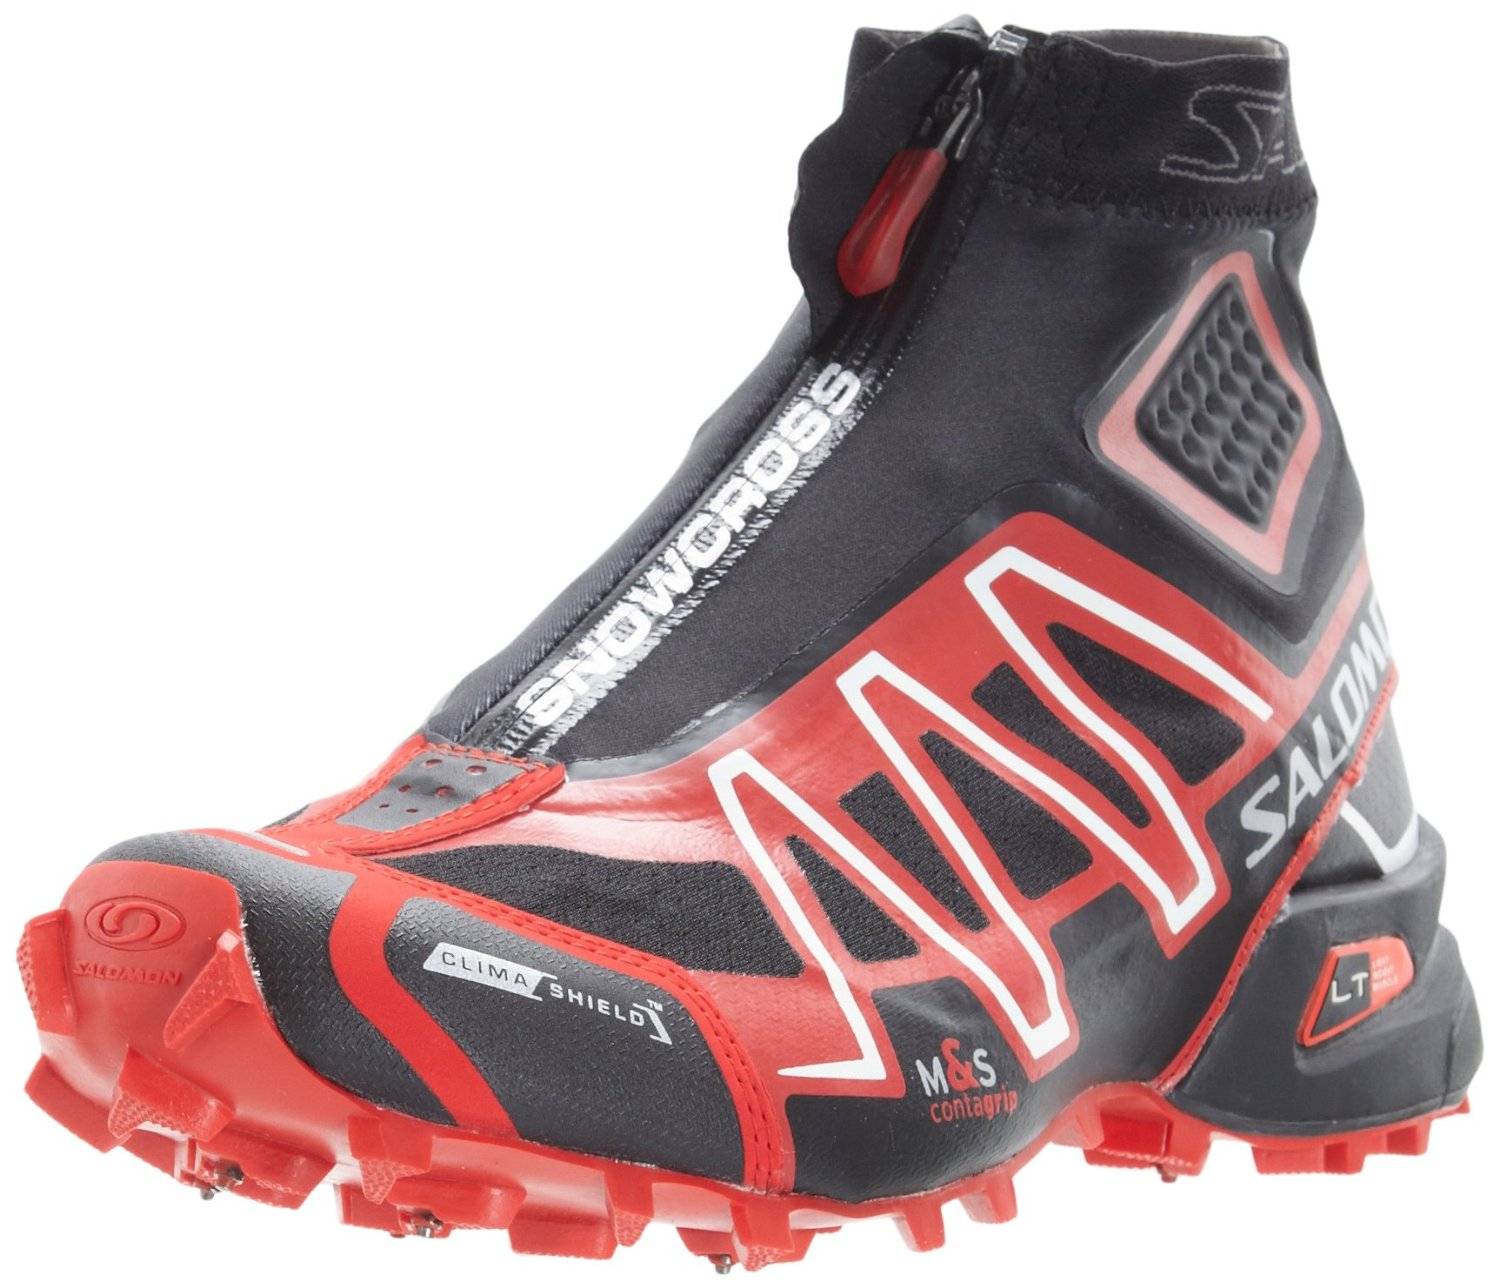 best sneakers 1c06a f8c9d Review: Salomon Snowcross CS Winter Running Shoes